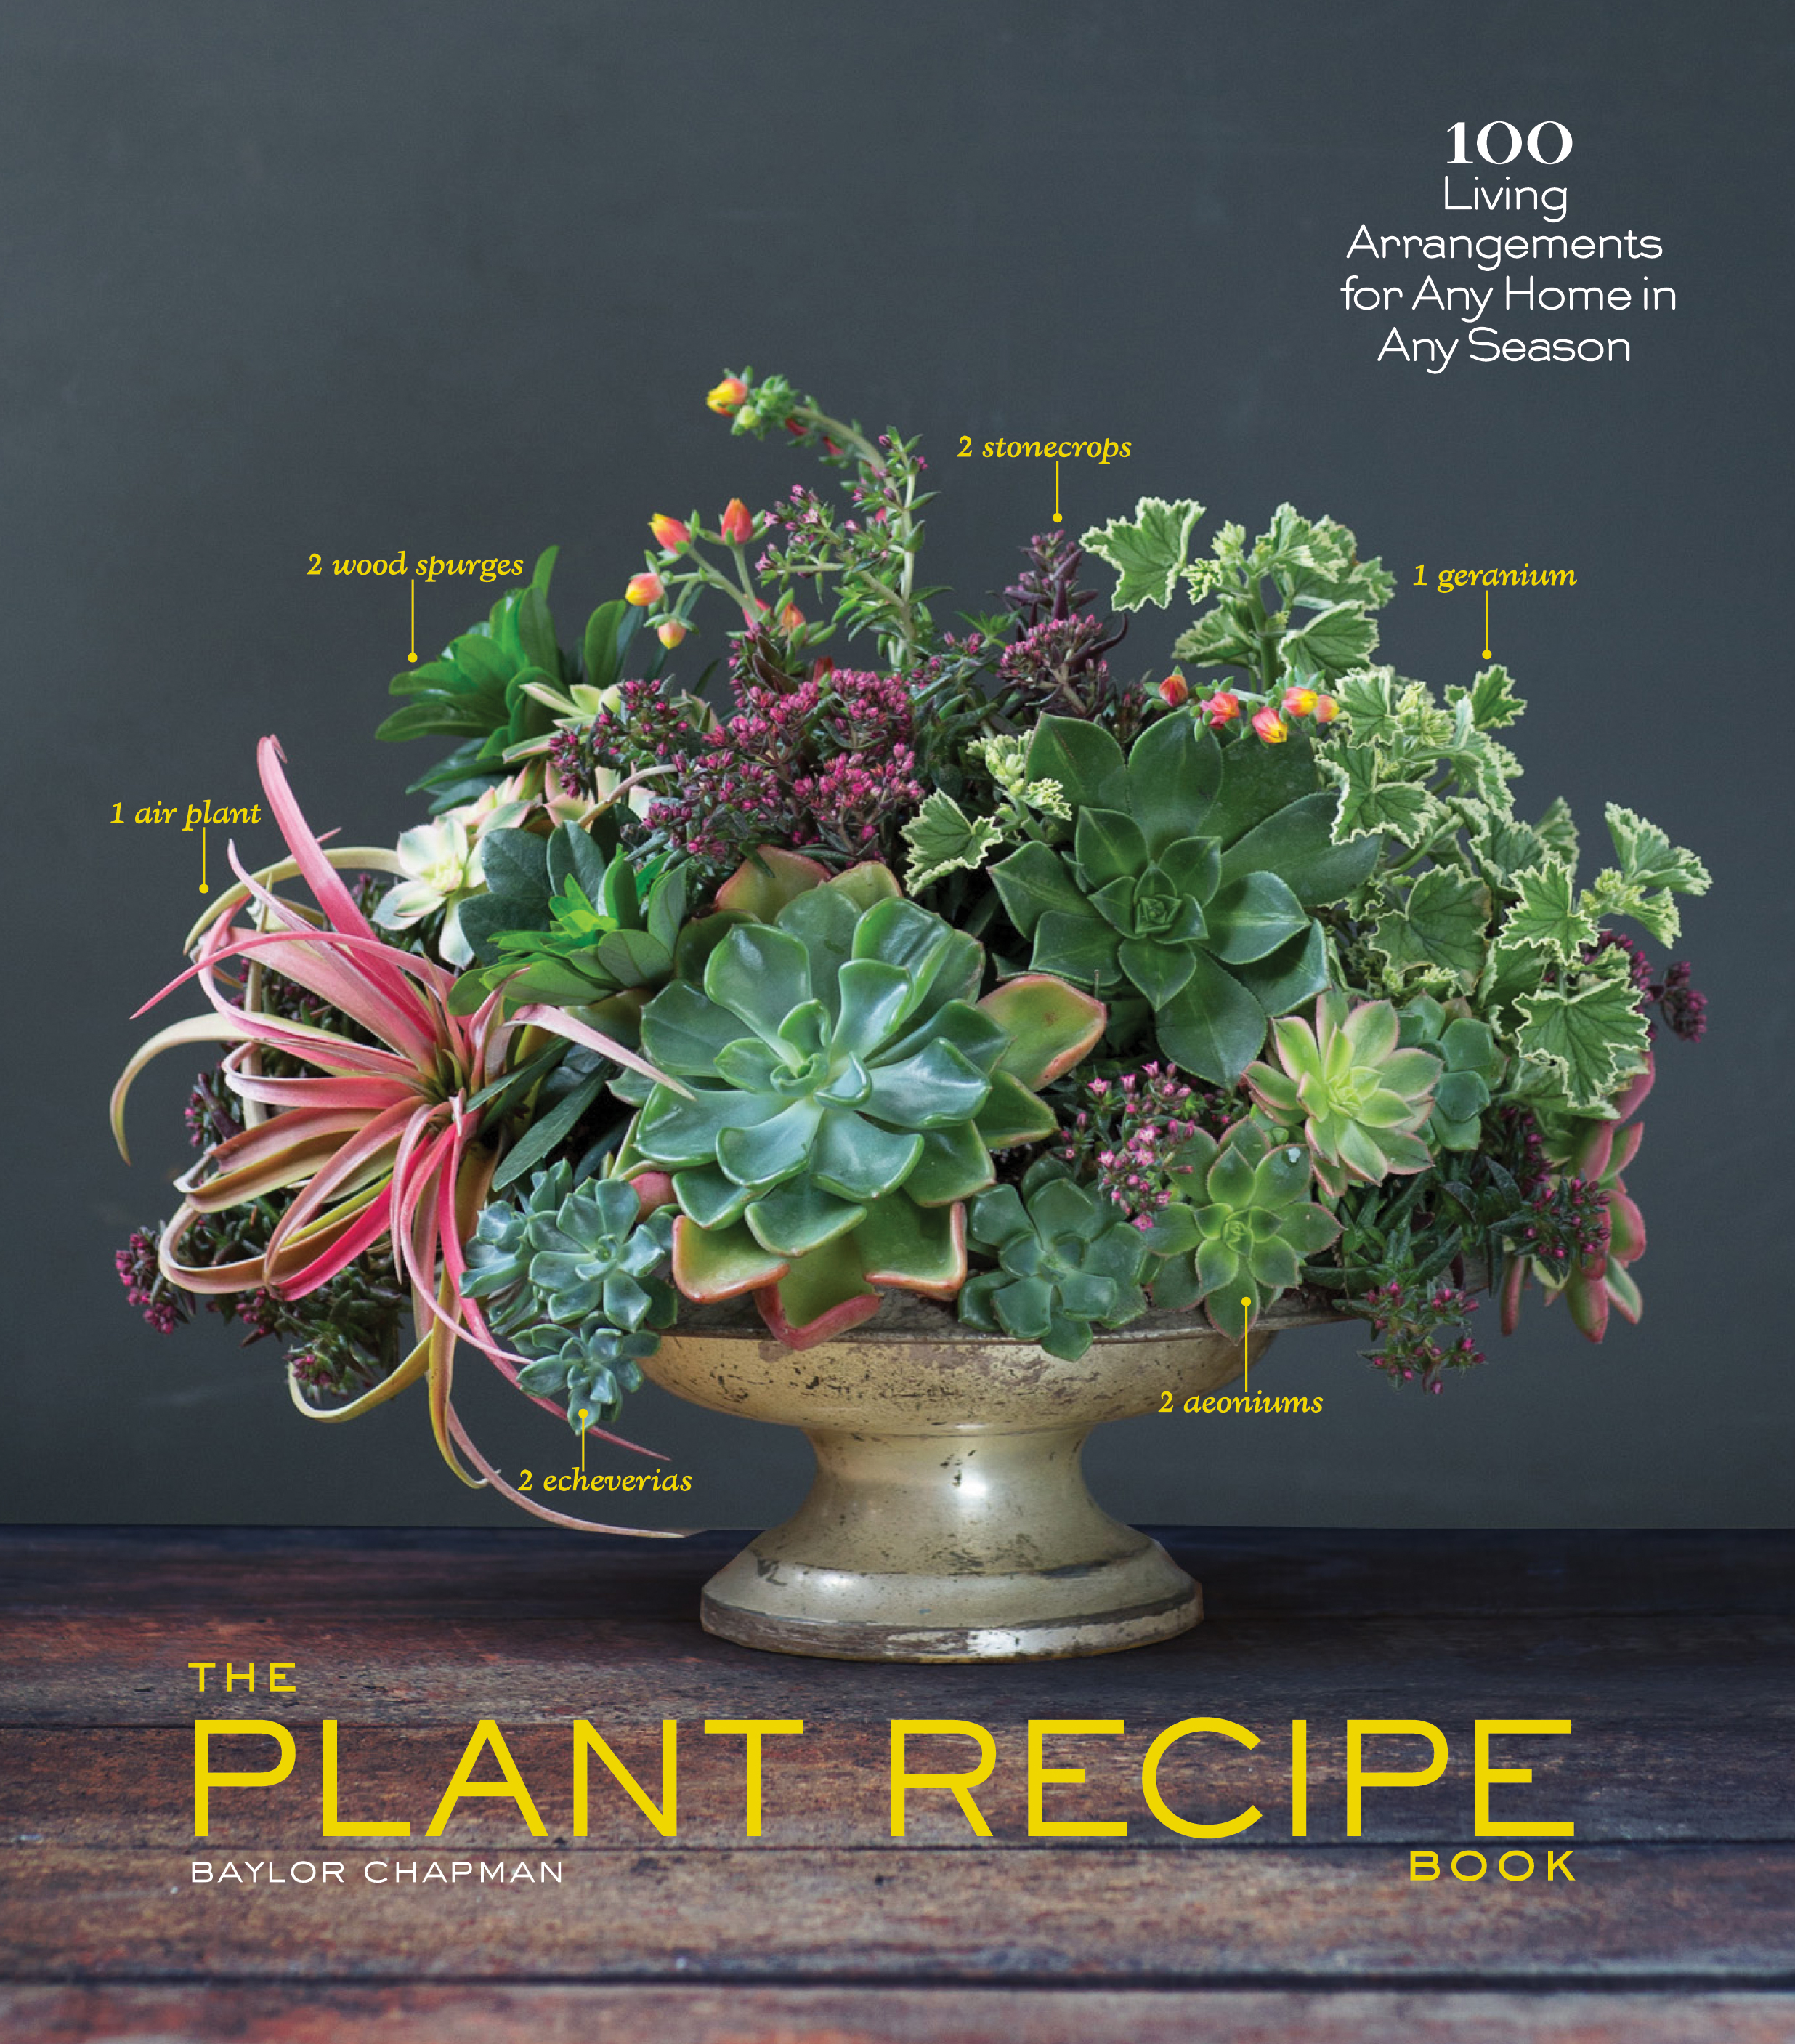 Excerpted from The Plant Recipe Bookby Baylor Chapman (Artisan Books). Copyright (c) 2014. Photographs by Paige Green